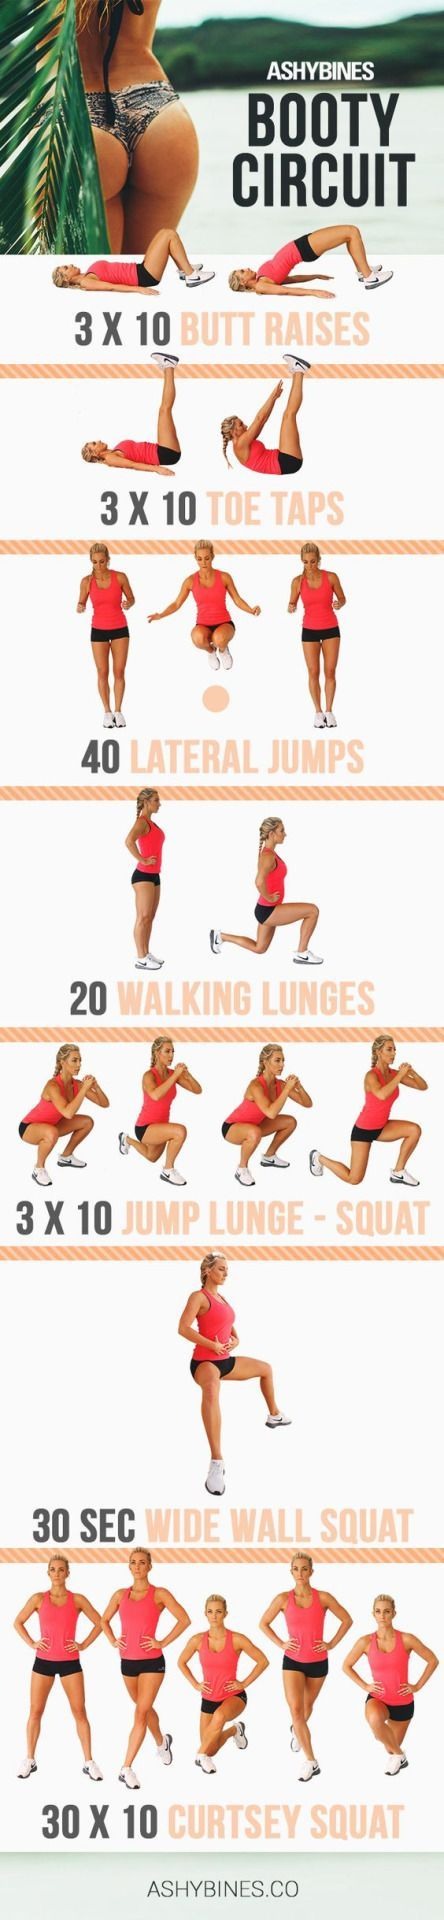 Curtsey squats are the best!